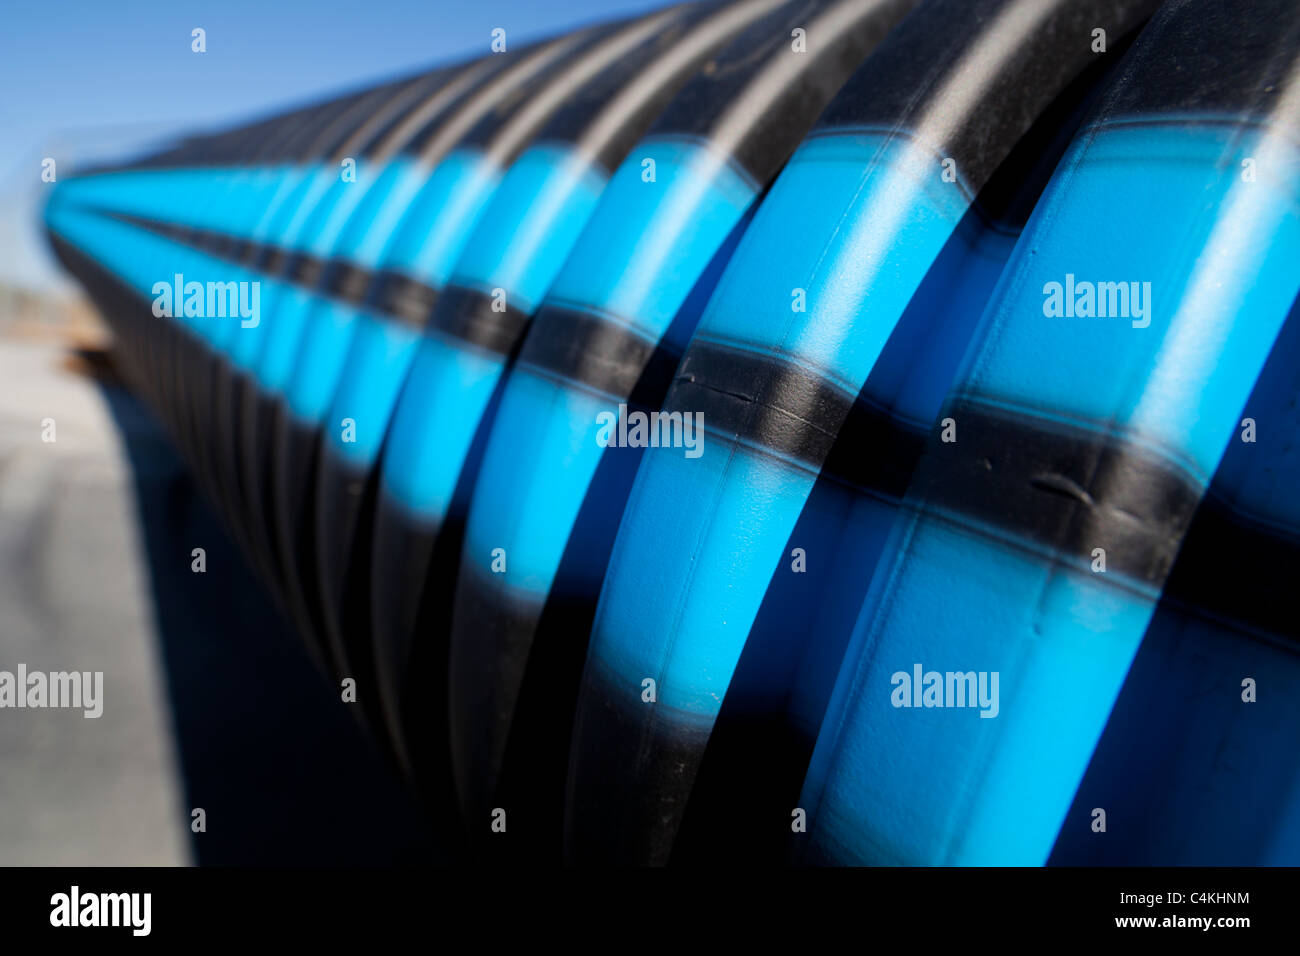 Blue and black stripes on grooved PVC water pipe surface Stock Photo